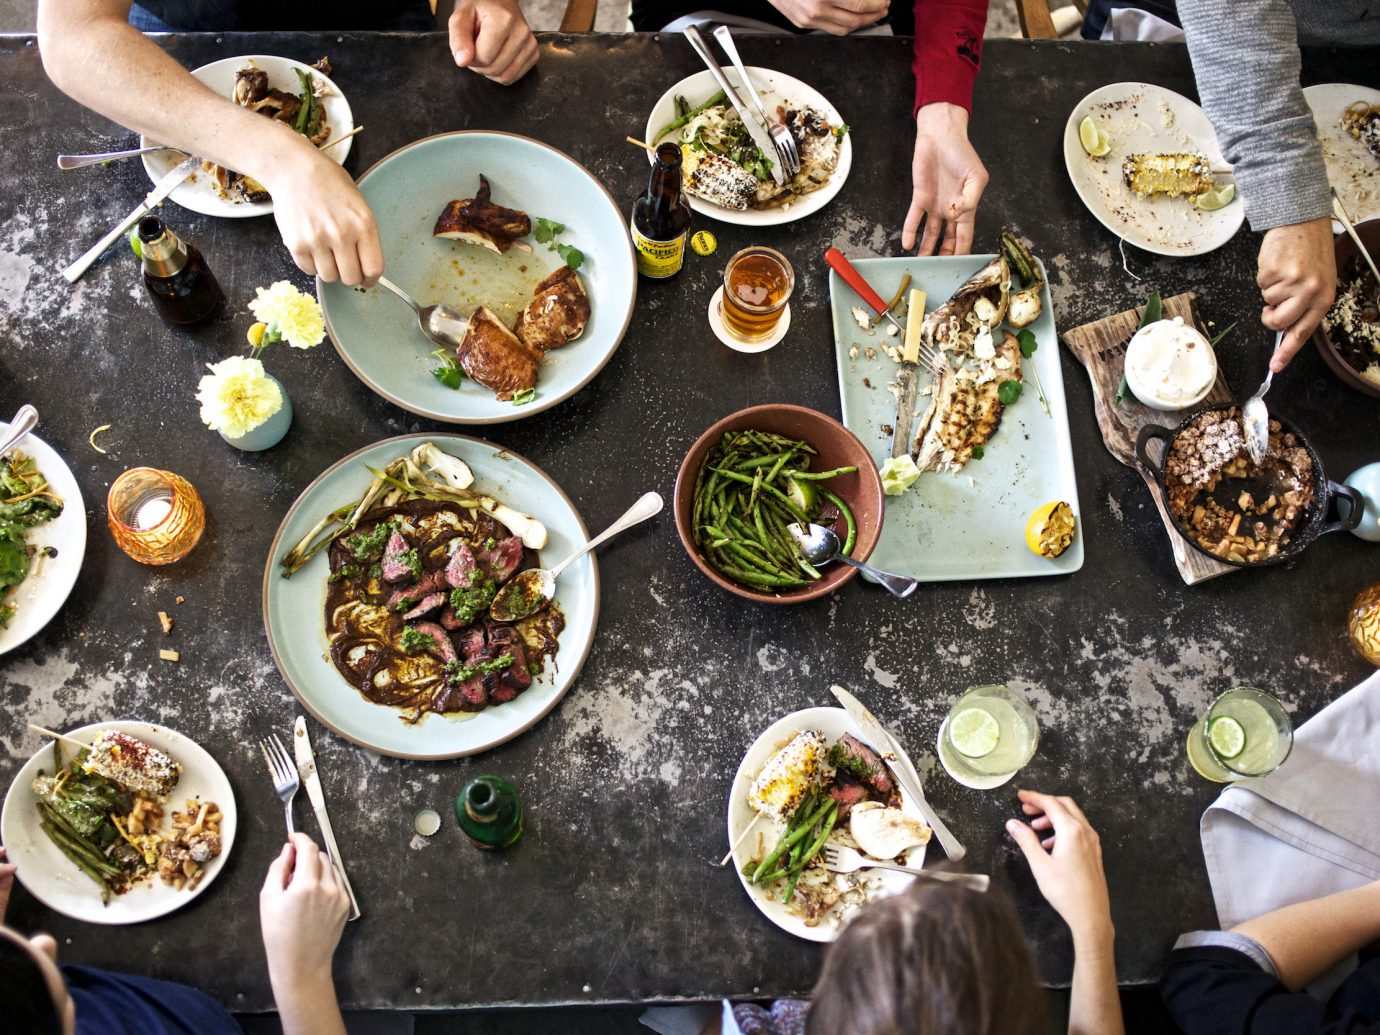 Arts + Culture Austin Nashville Trip Ideas food person plate dish meal group sense lunch different bunch several meat